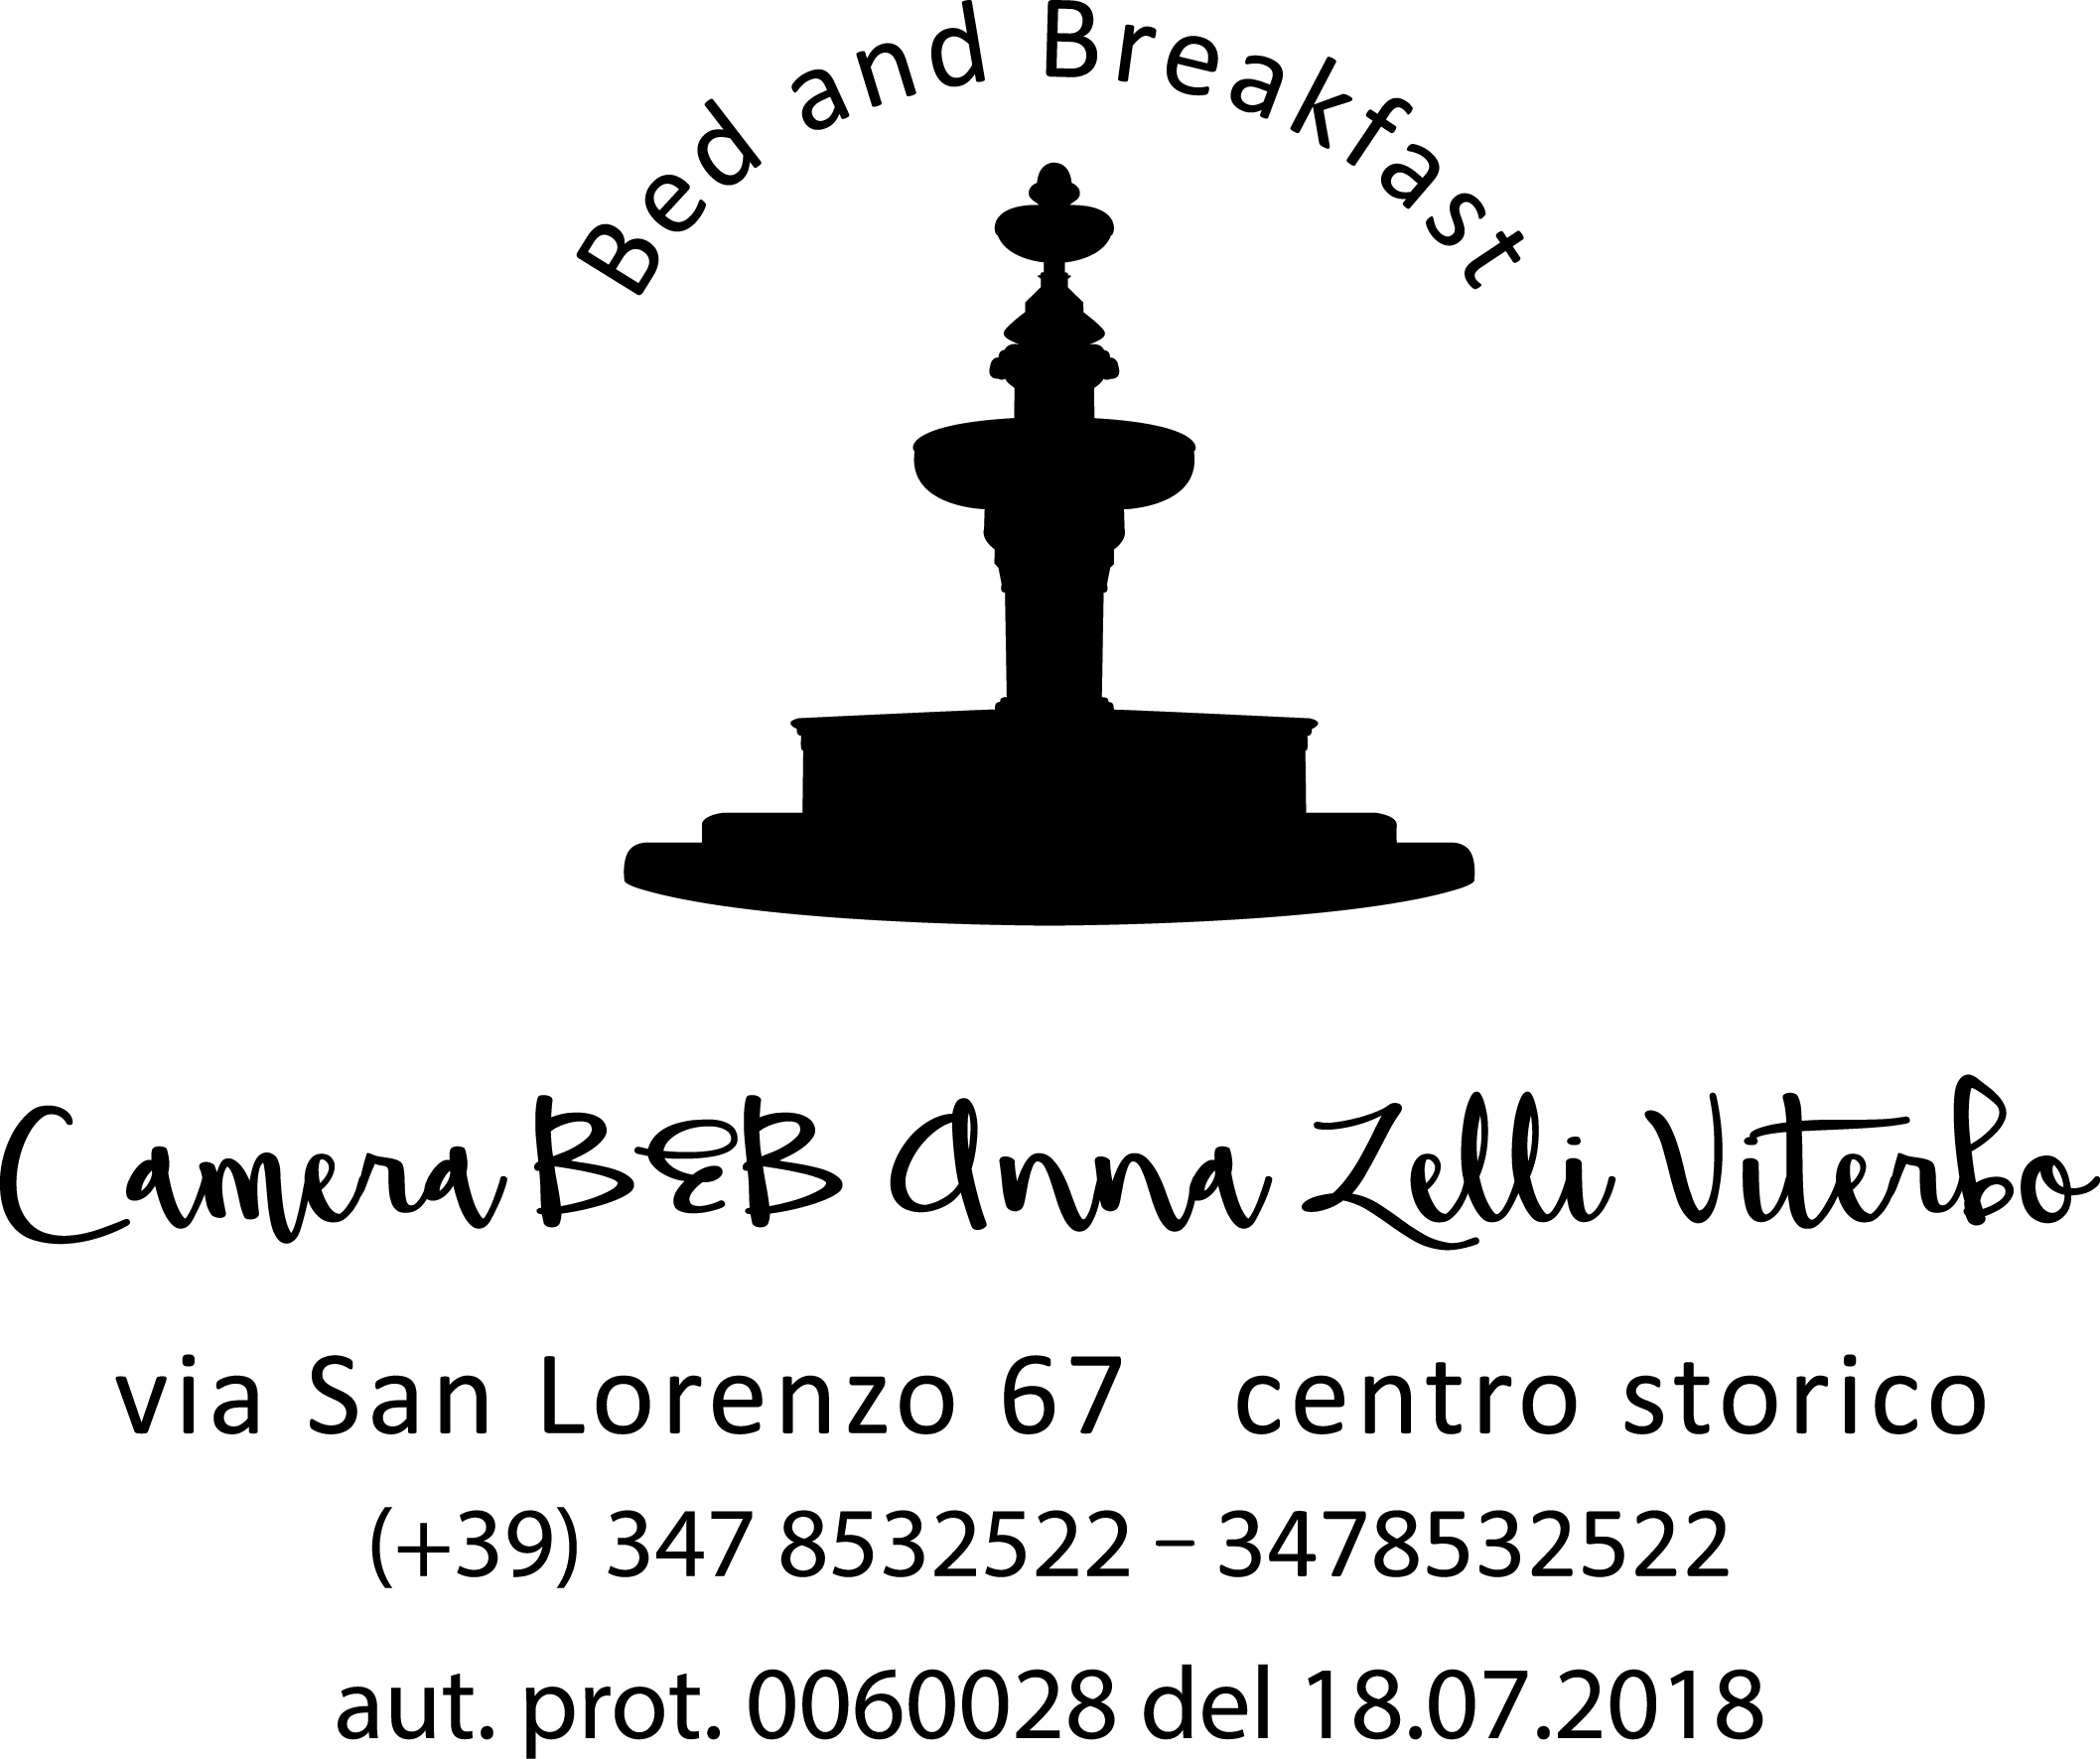 camera b&b anna zelli viterbo logo bed and breakfast centro storico viterbo